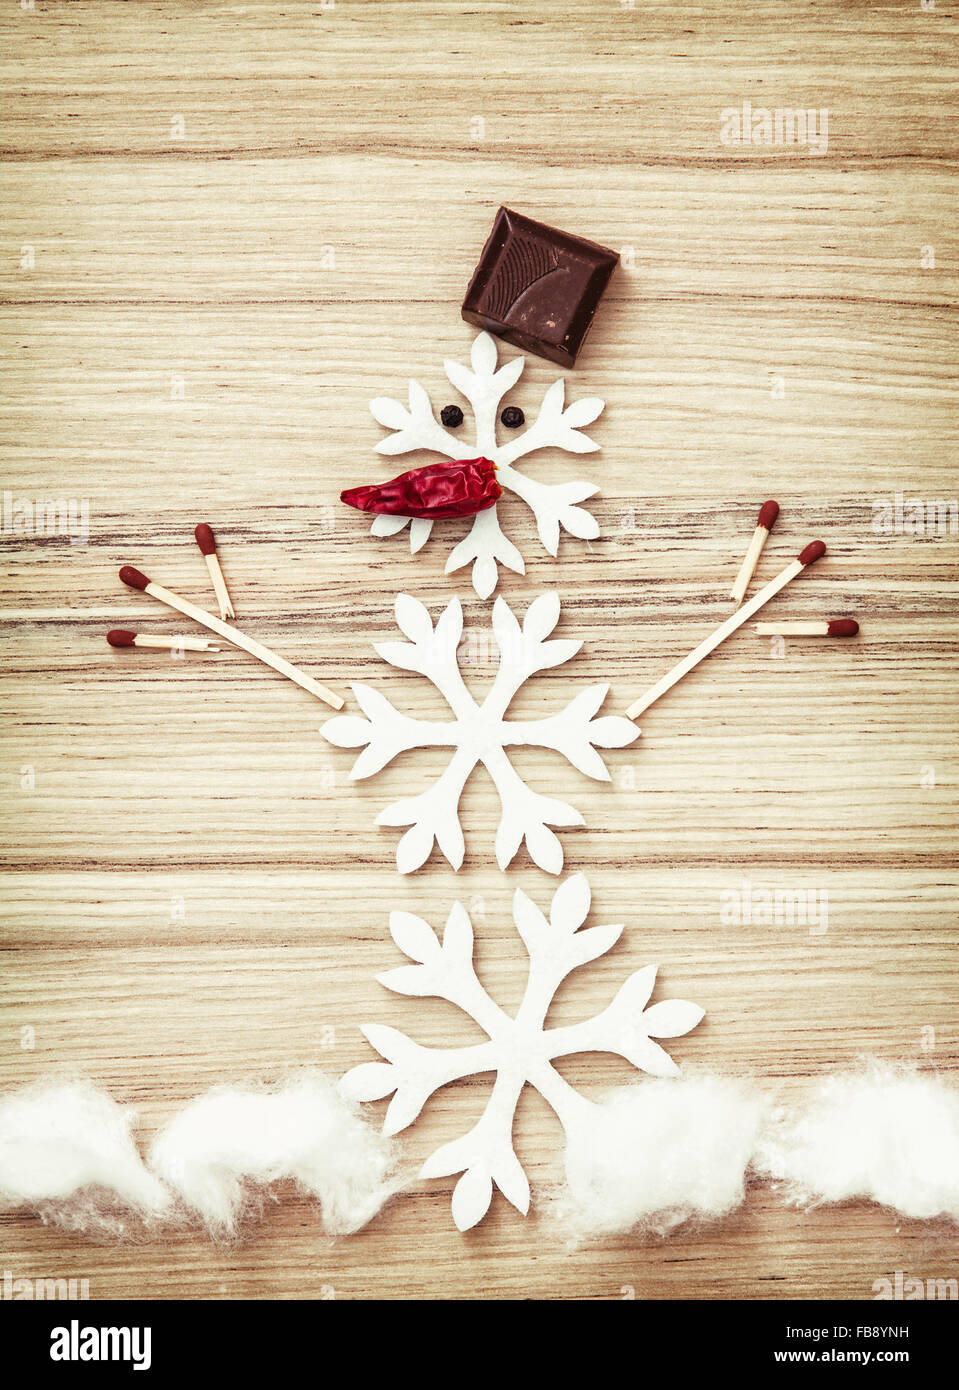 beautiful snowman made of snow flakes matches chocolate and chili peppers on the wooden background symbol of winter